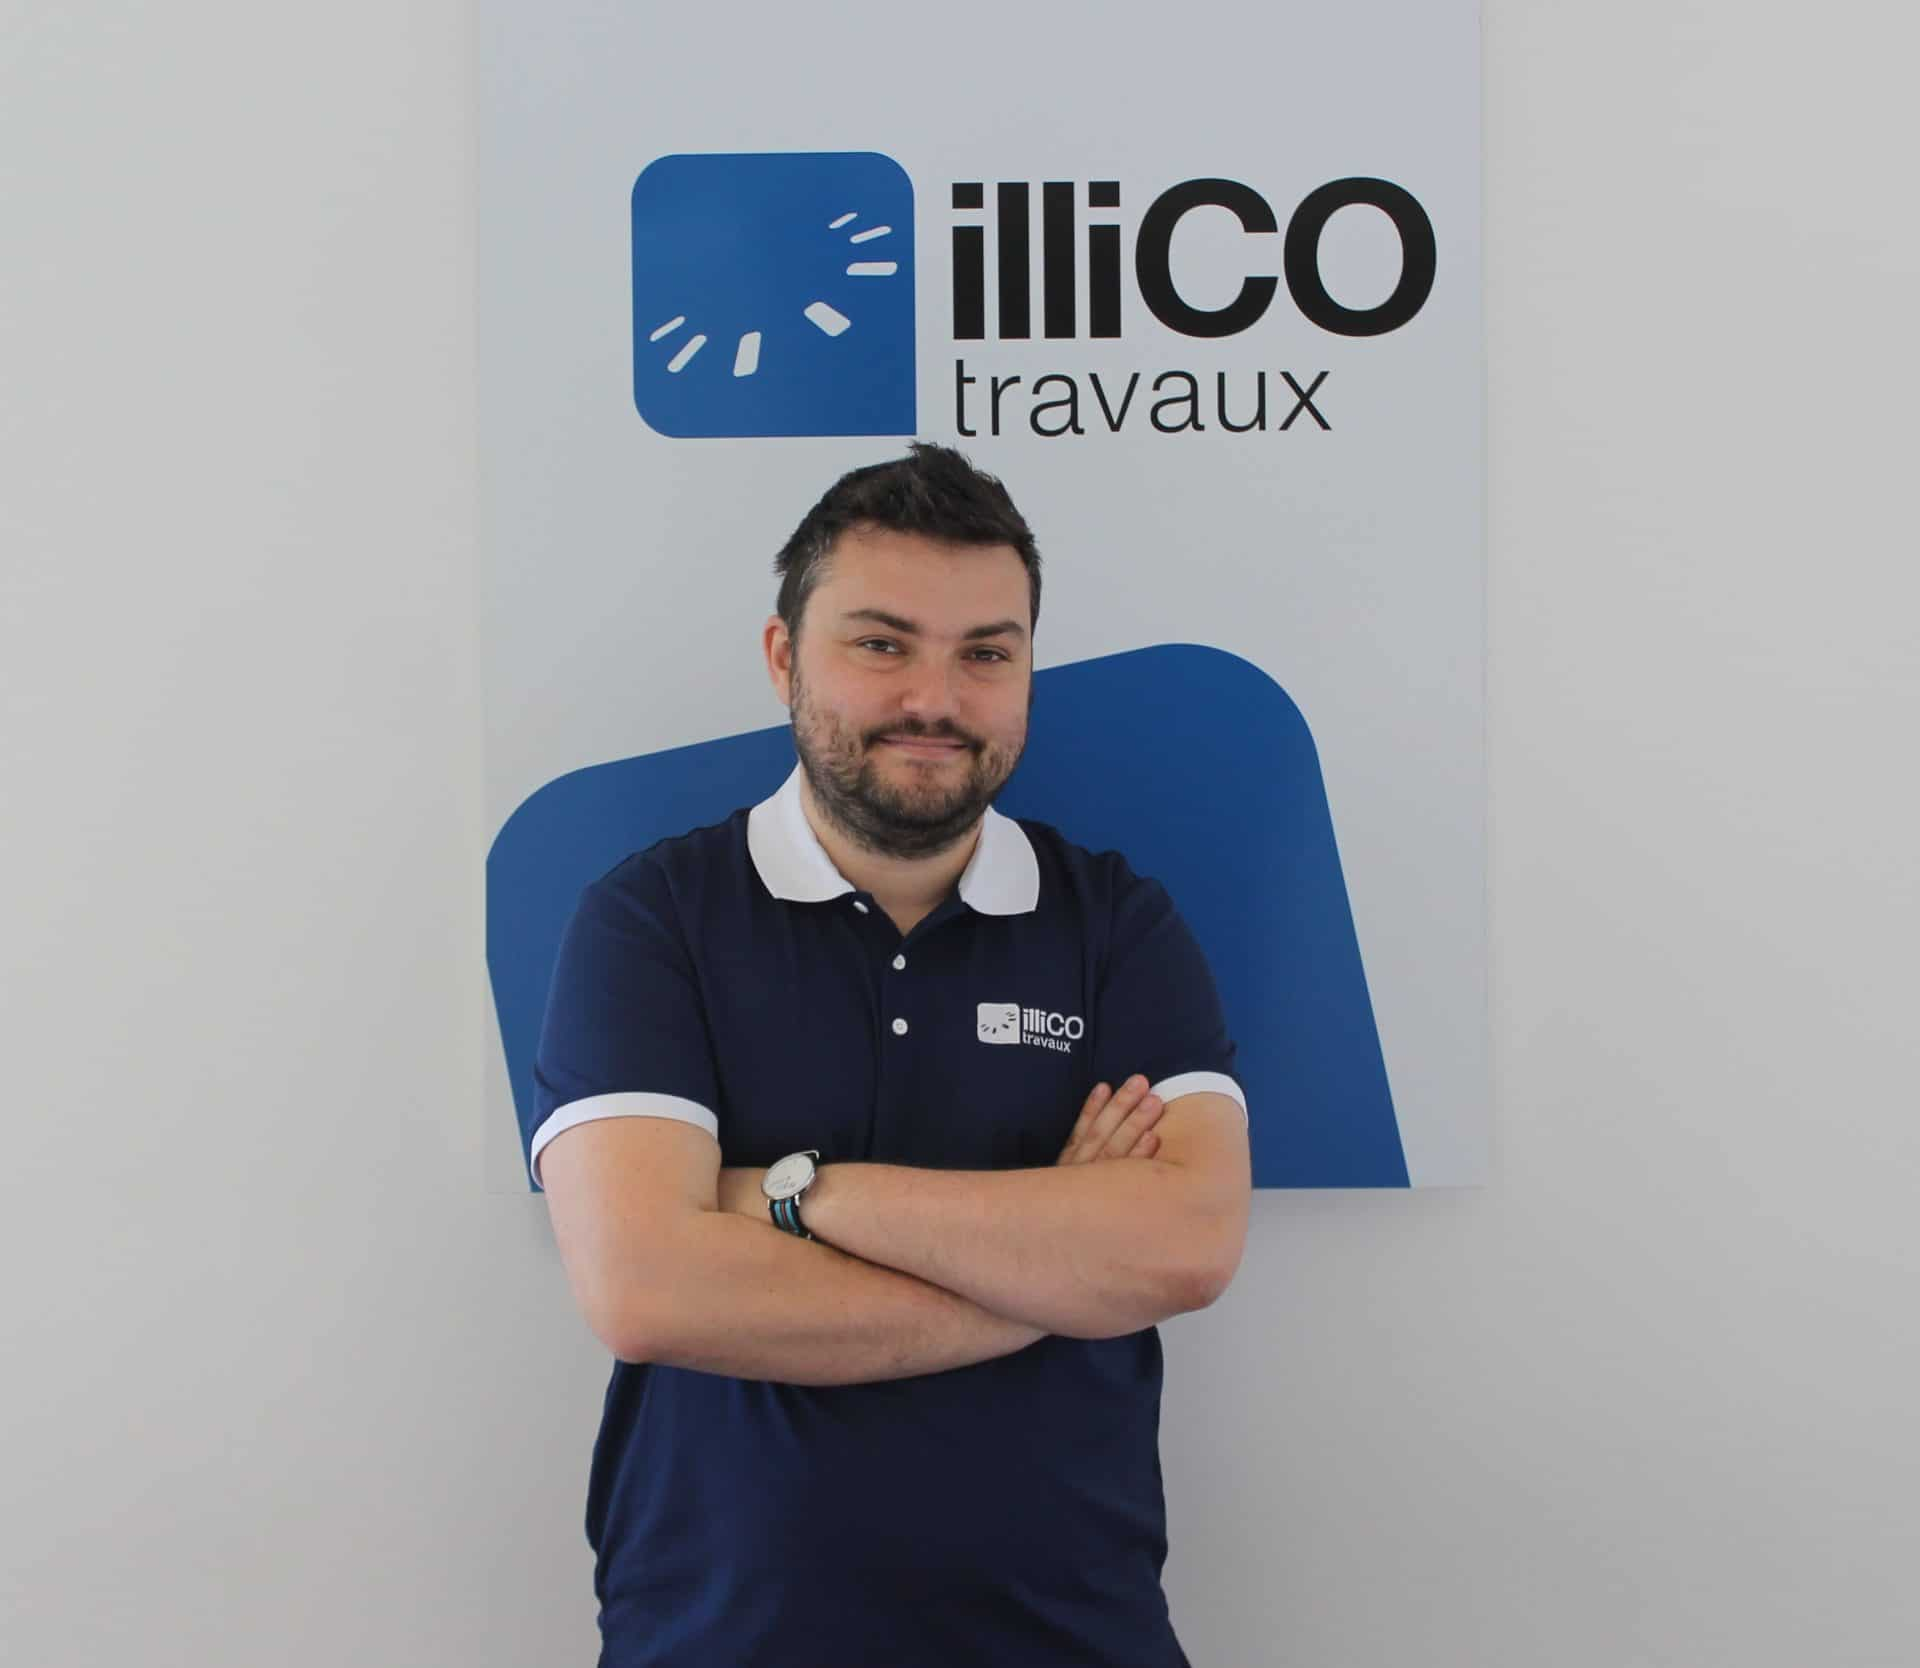 illiCO travaux Arras